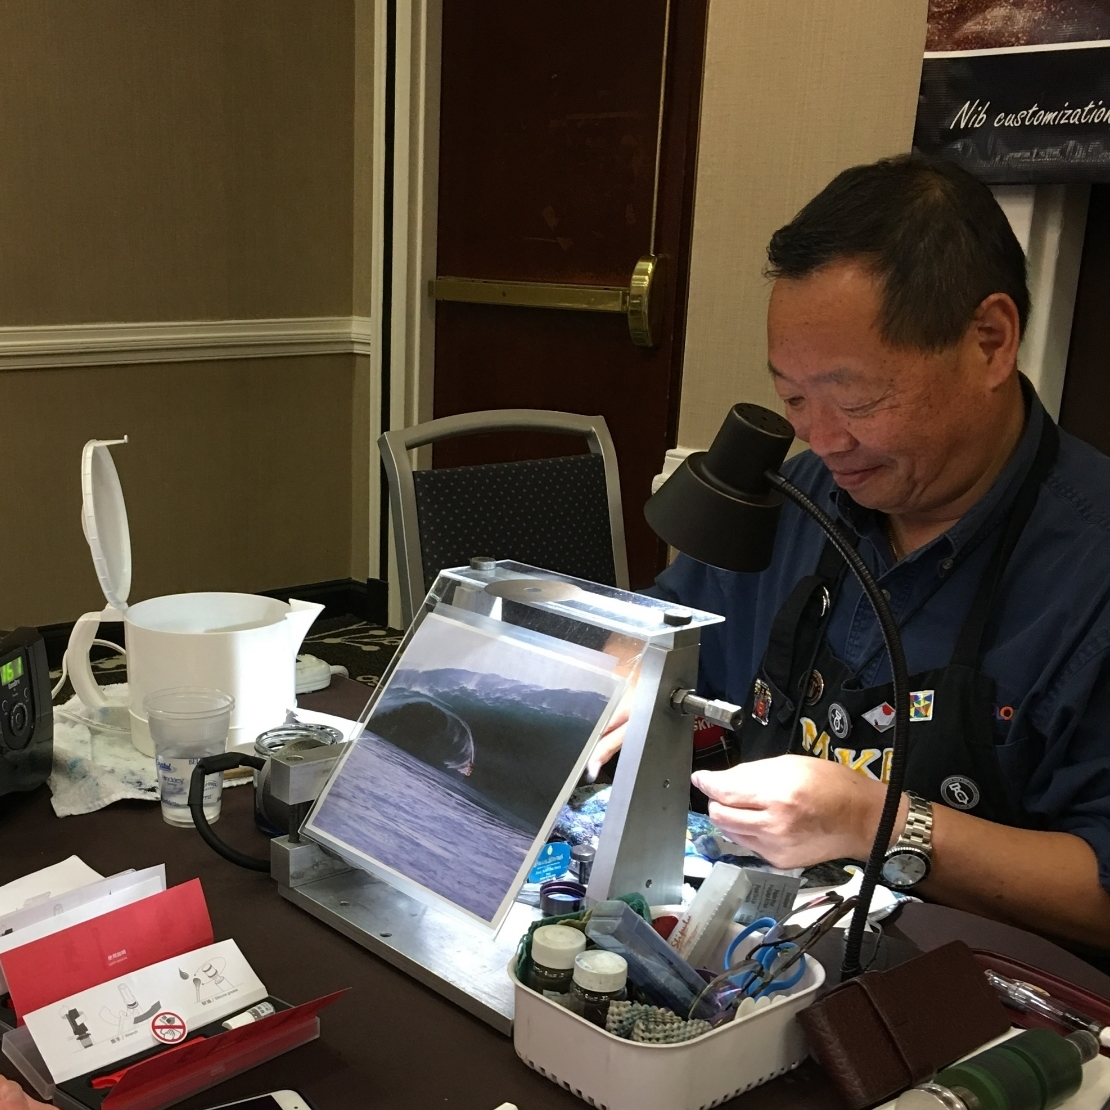 Mike Masuyama and his nib customization setup at the 2016 Atlanta Pen Show.